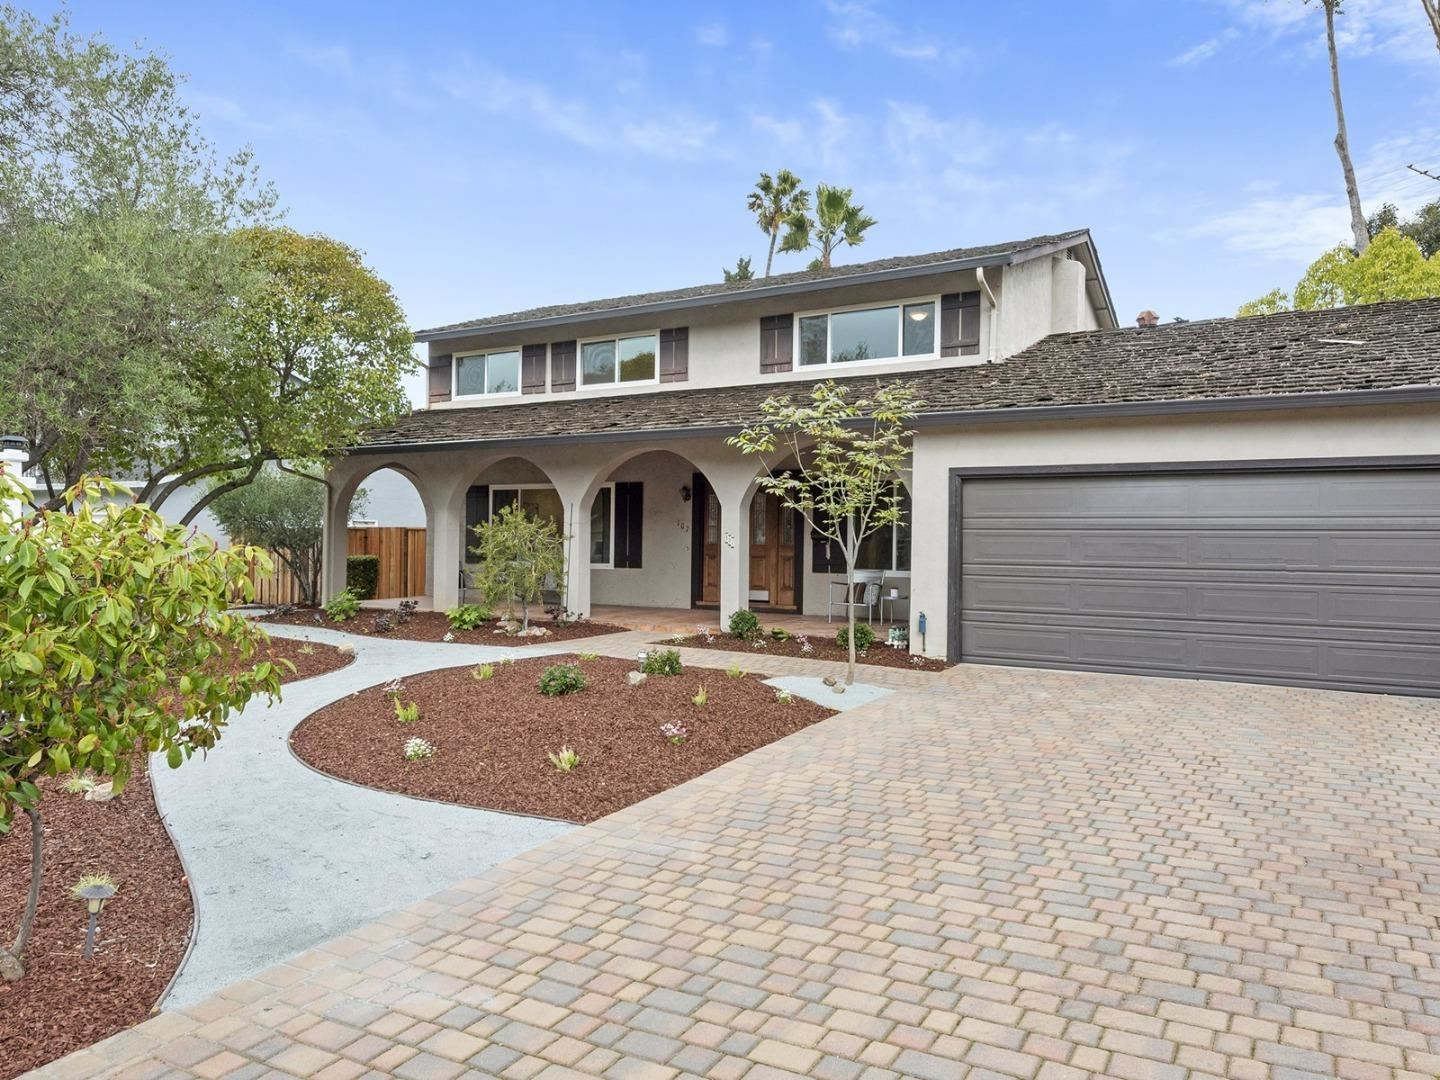 Photo for 107 Belvale DR, LOS GATOS, CA 95032 (MLS # ML81830747)